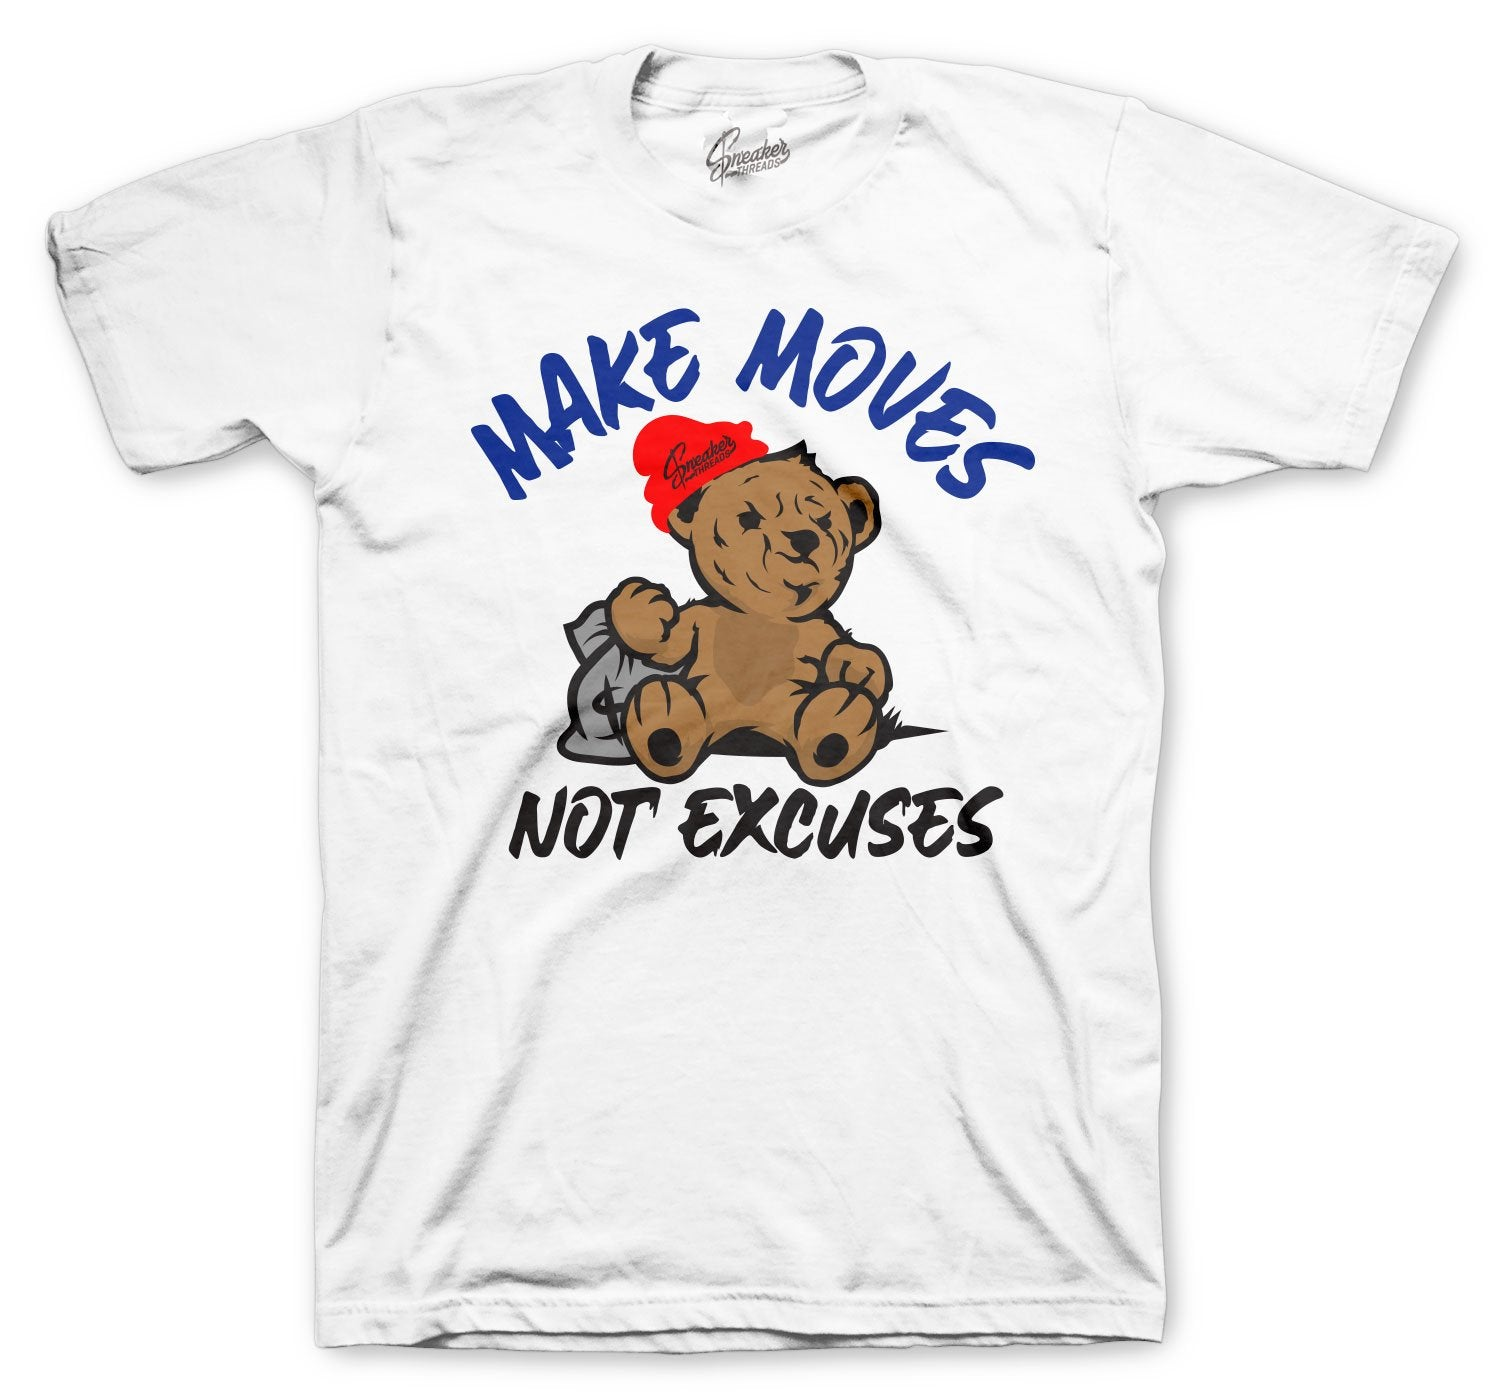 Money Bear Shirt to match perfect with Jordan 4 Loyal Blue